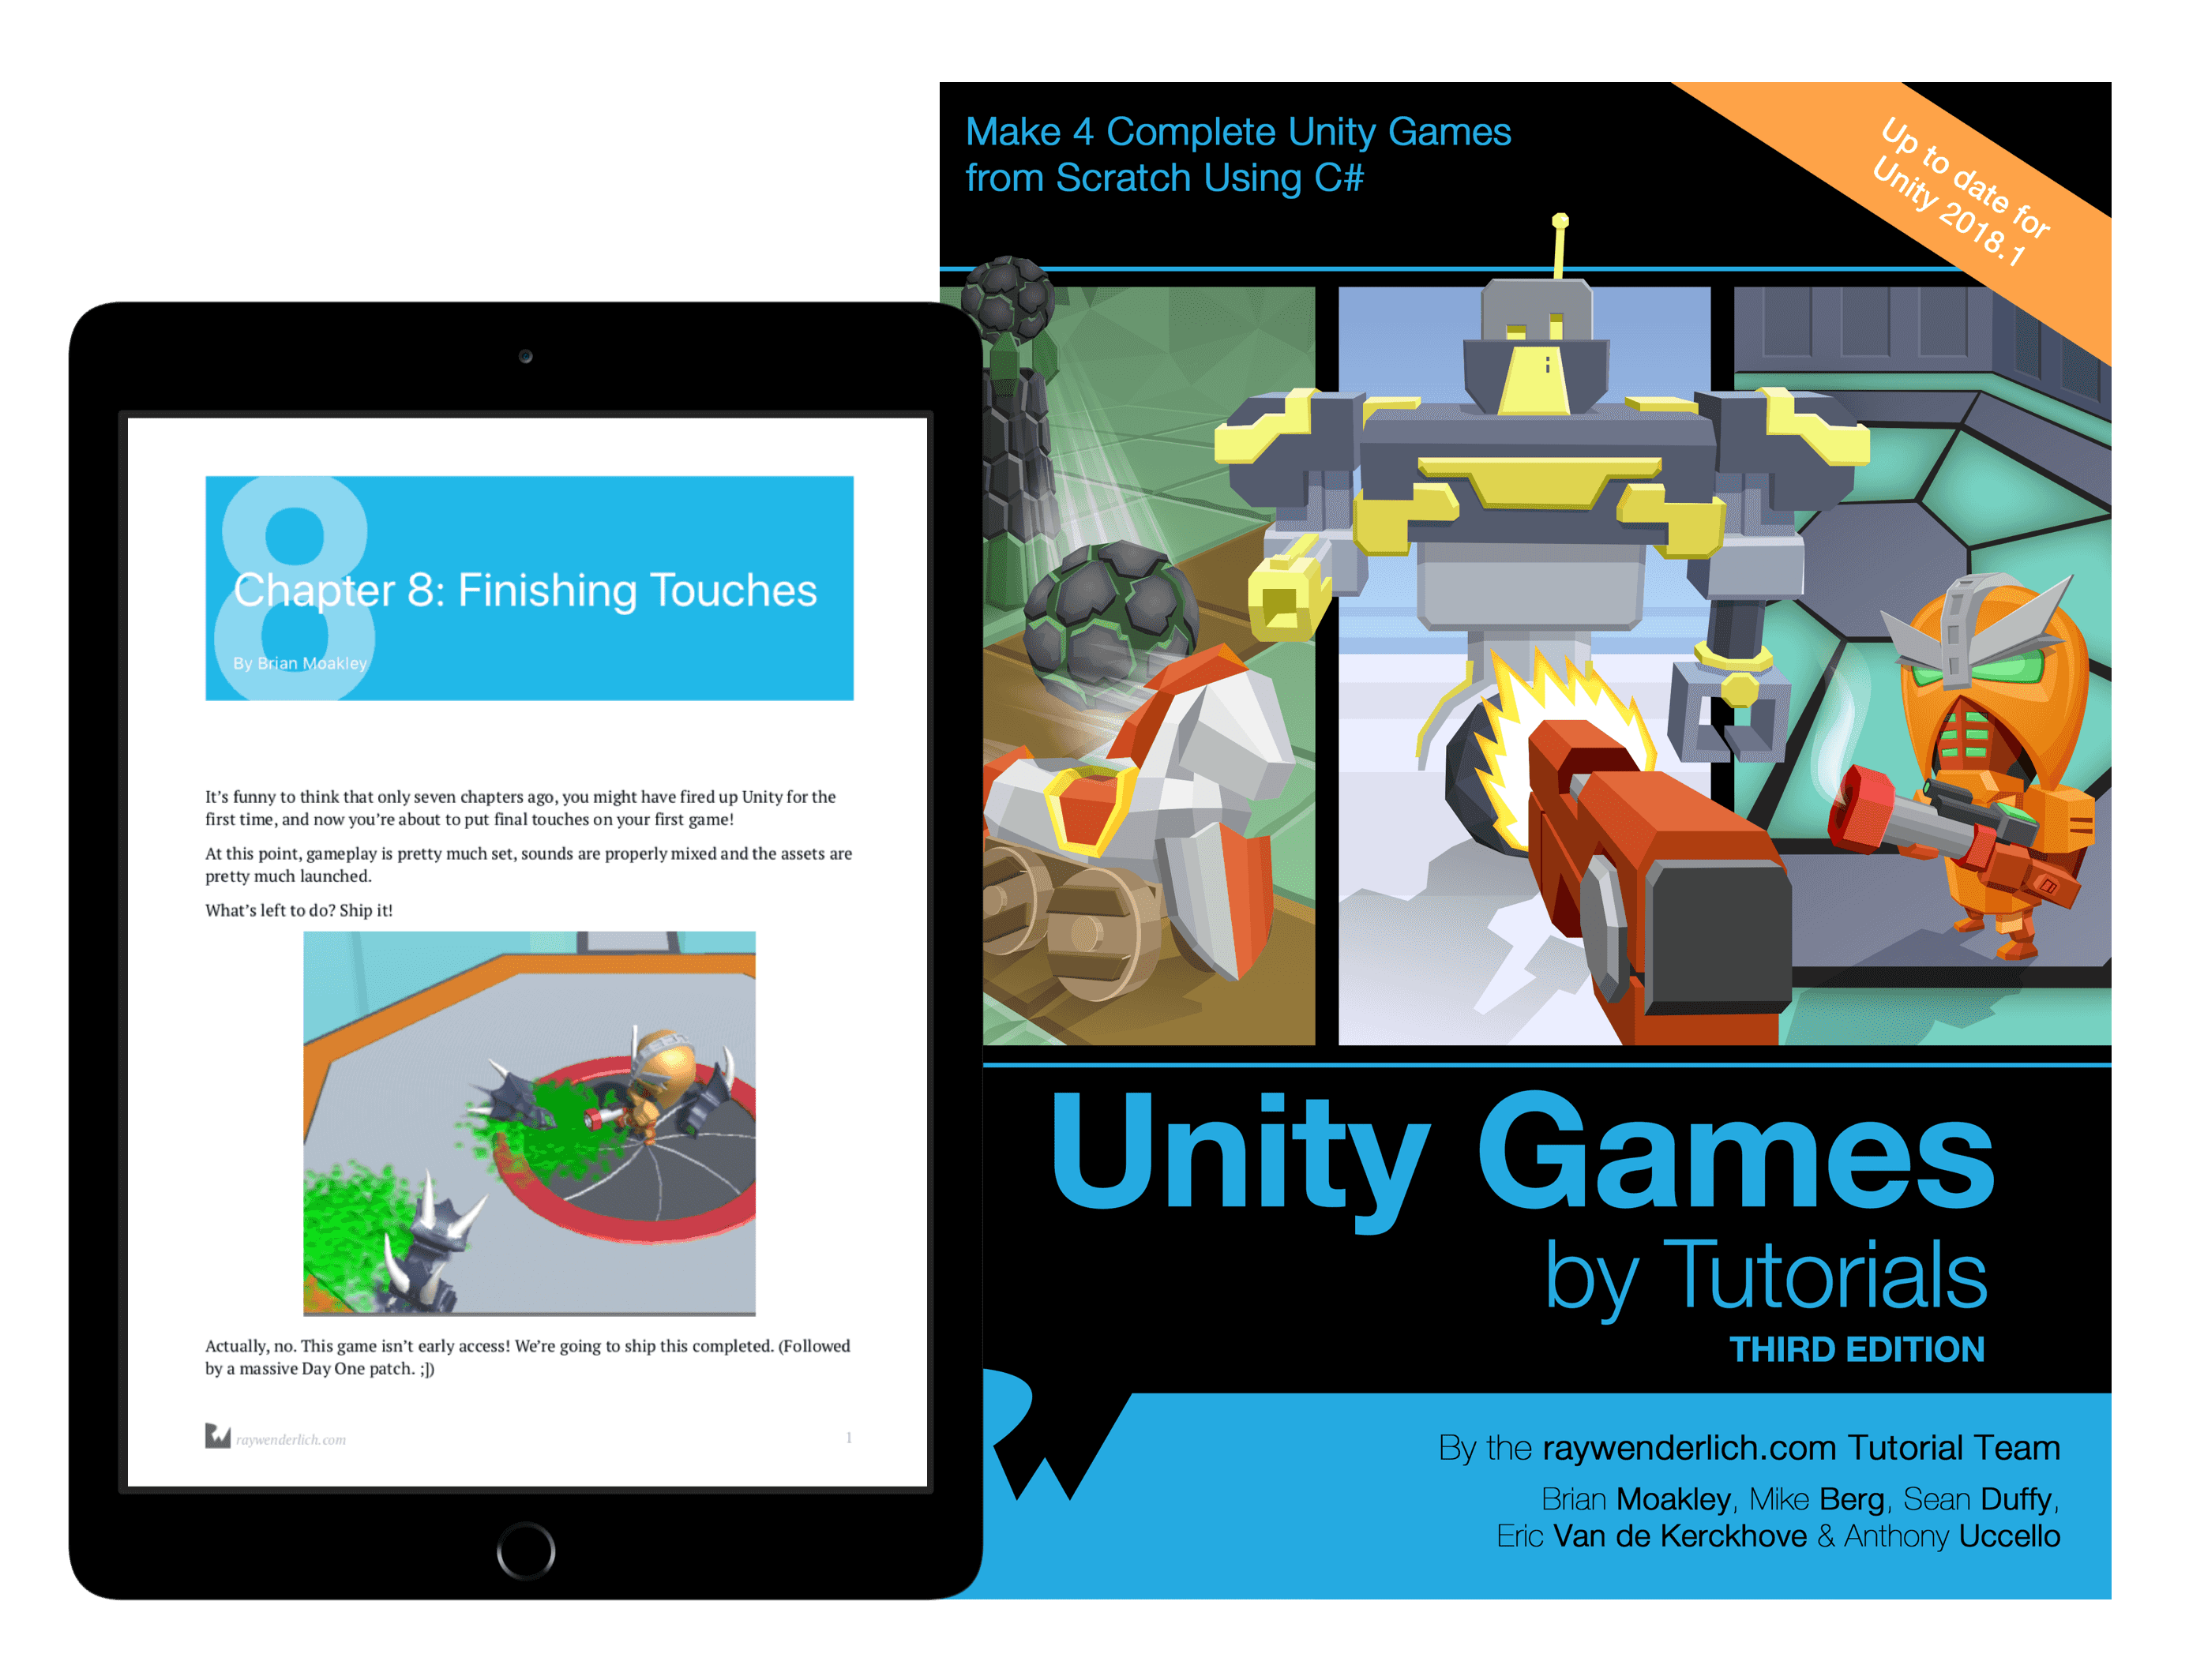 Unity Games by Tutorials